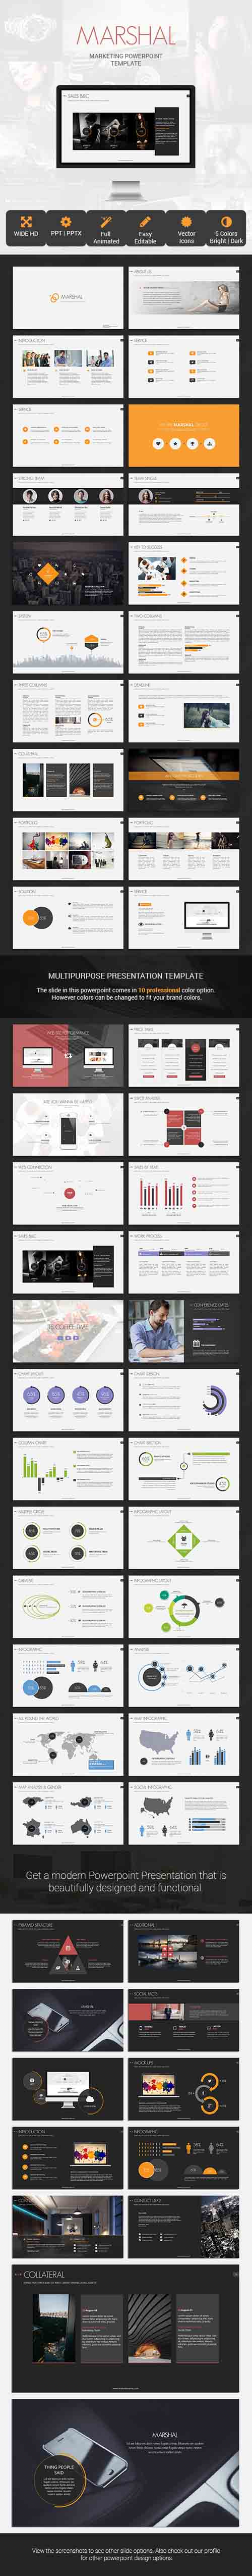 Marshal Marketing Presentation Template 8008052